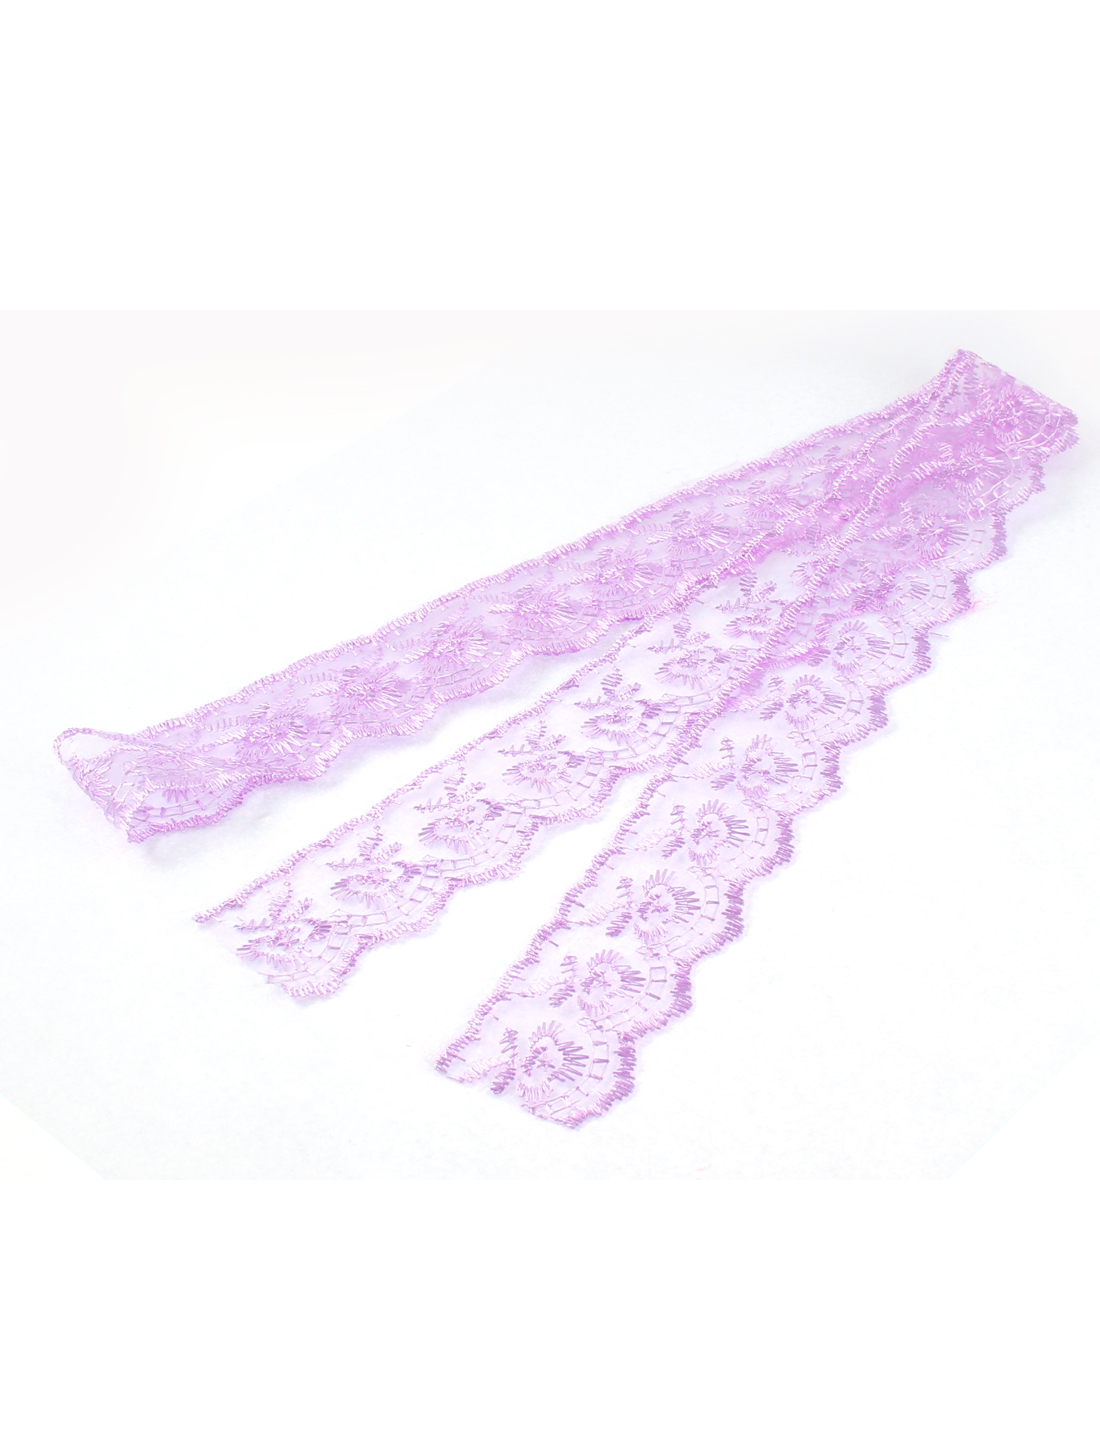 Headwear Veil Dress Making Lace Trim Ribbon Purple 4cm x 1M